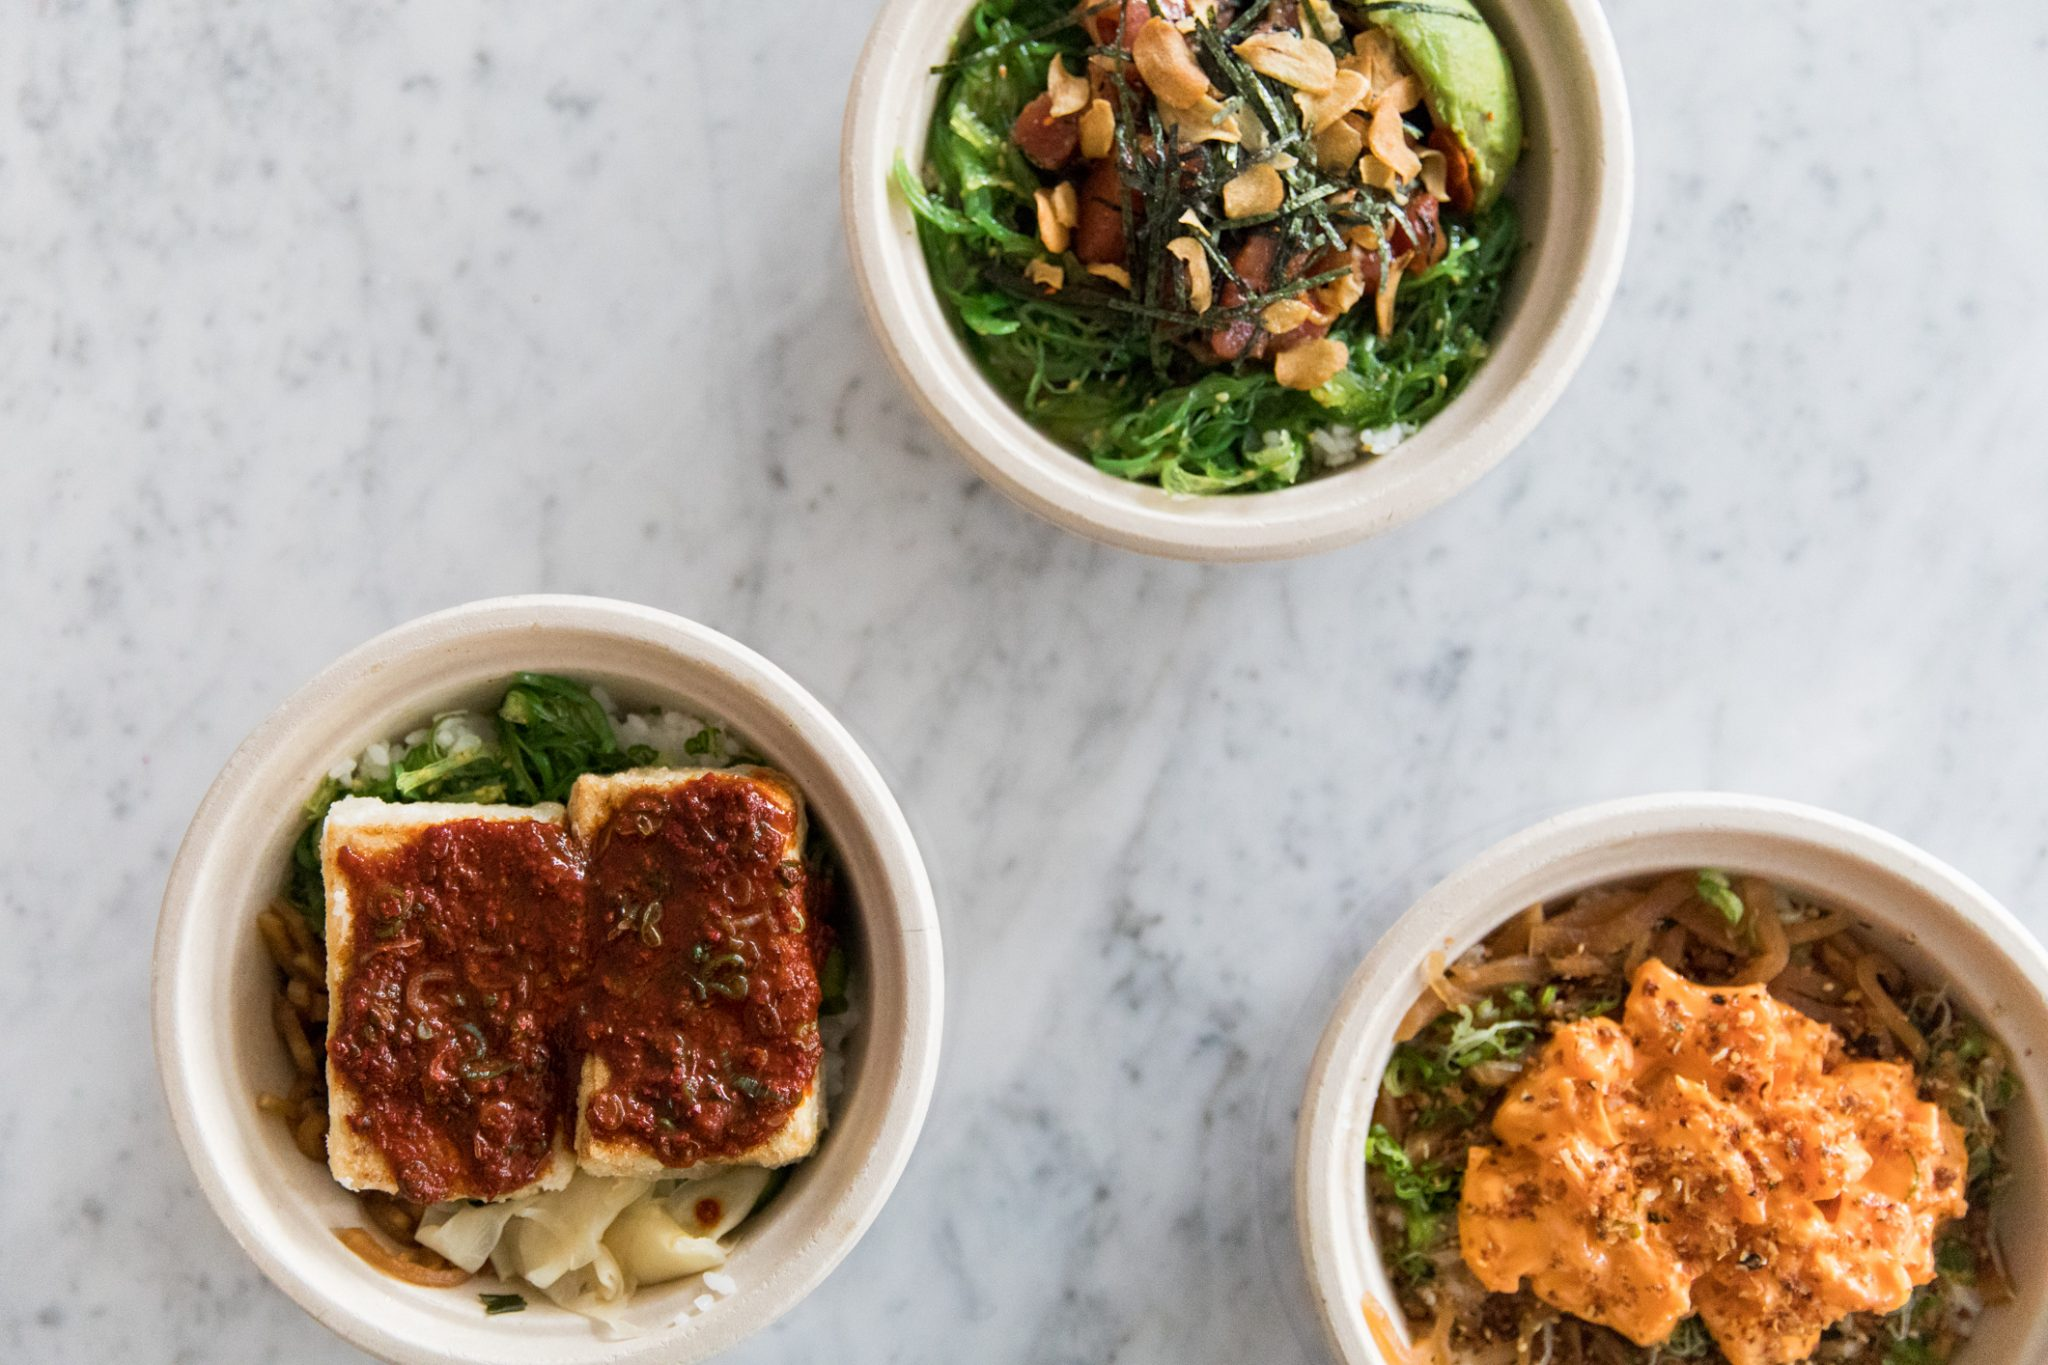 Best Poke Spots in Manhattan